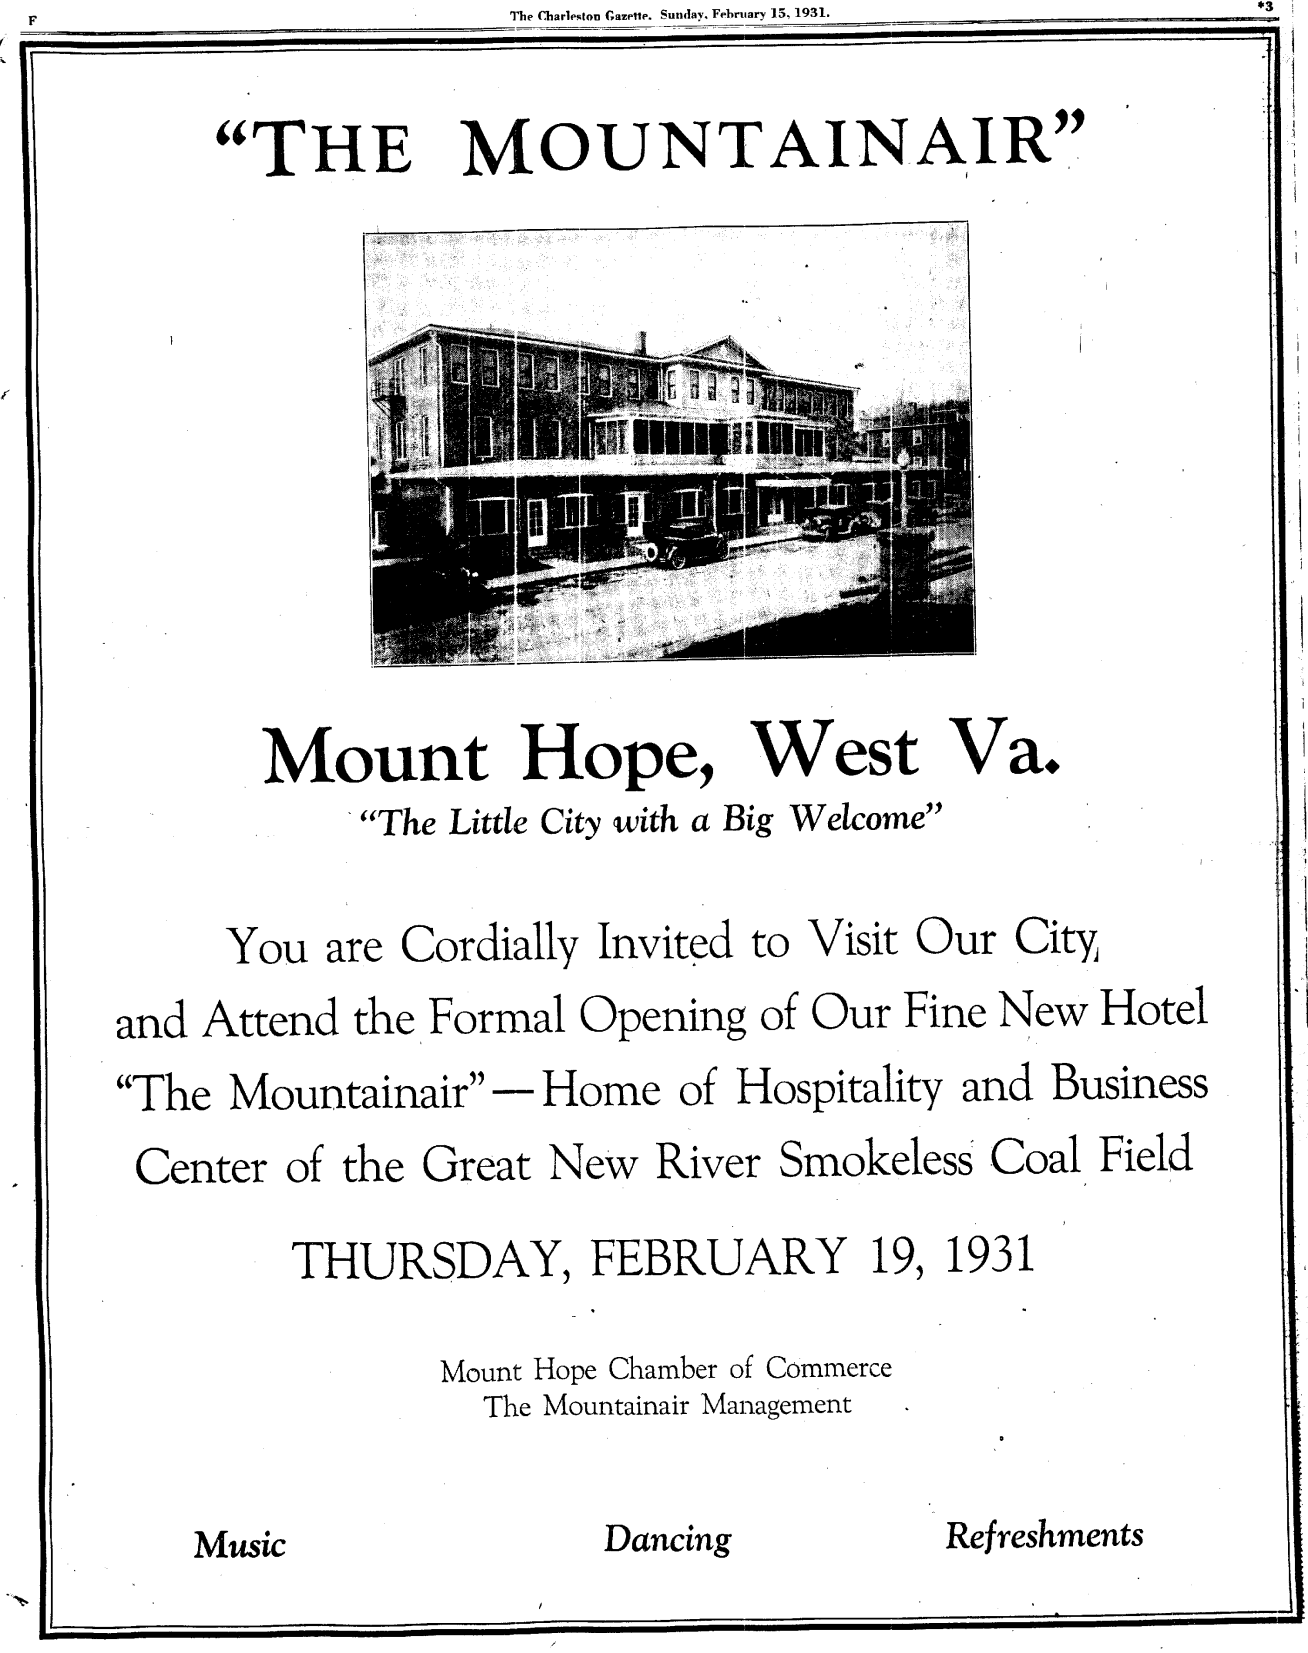 Public Invitation to the Grand Opening of the Mountainair Hotel. This is the front page of a special section of the Charleston Gazette that featured all the amenities of the town of Mount Hope offered travelers to the area.